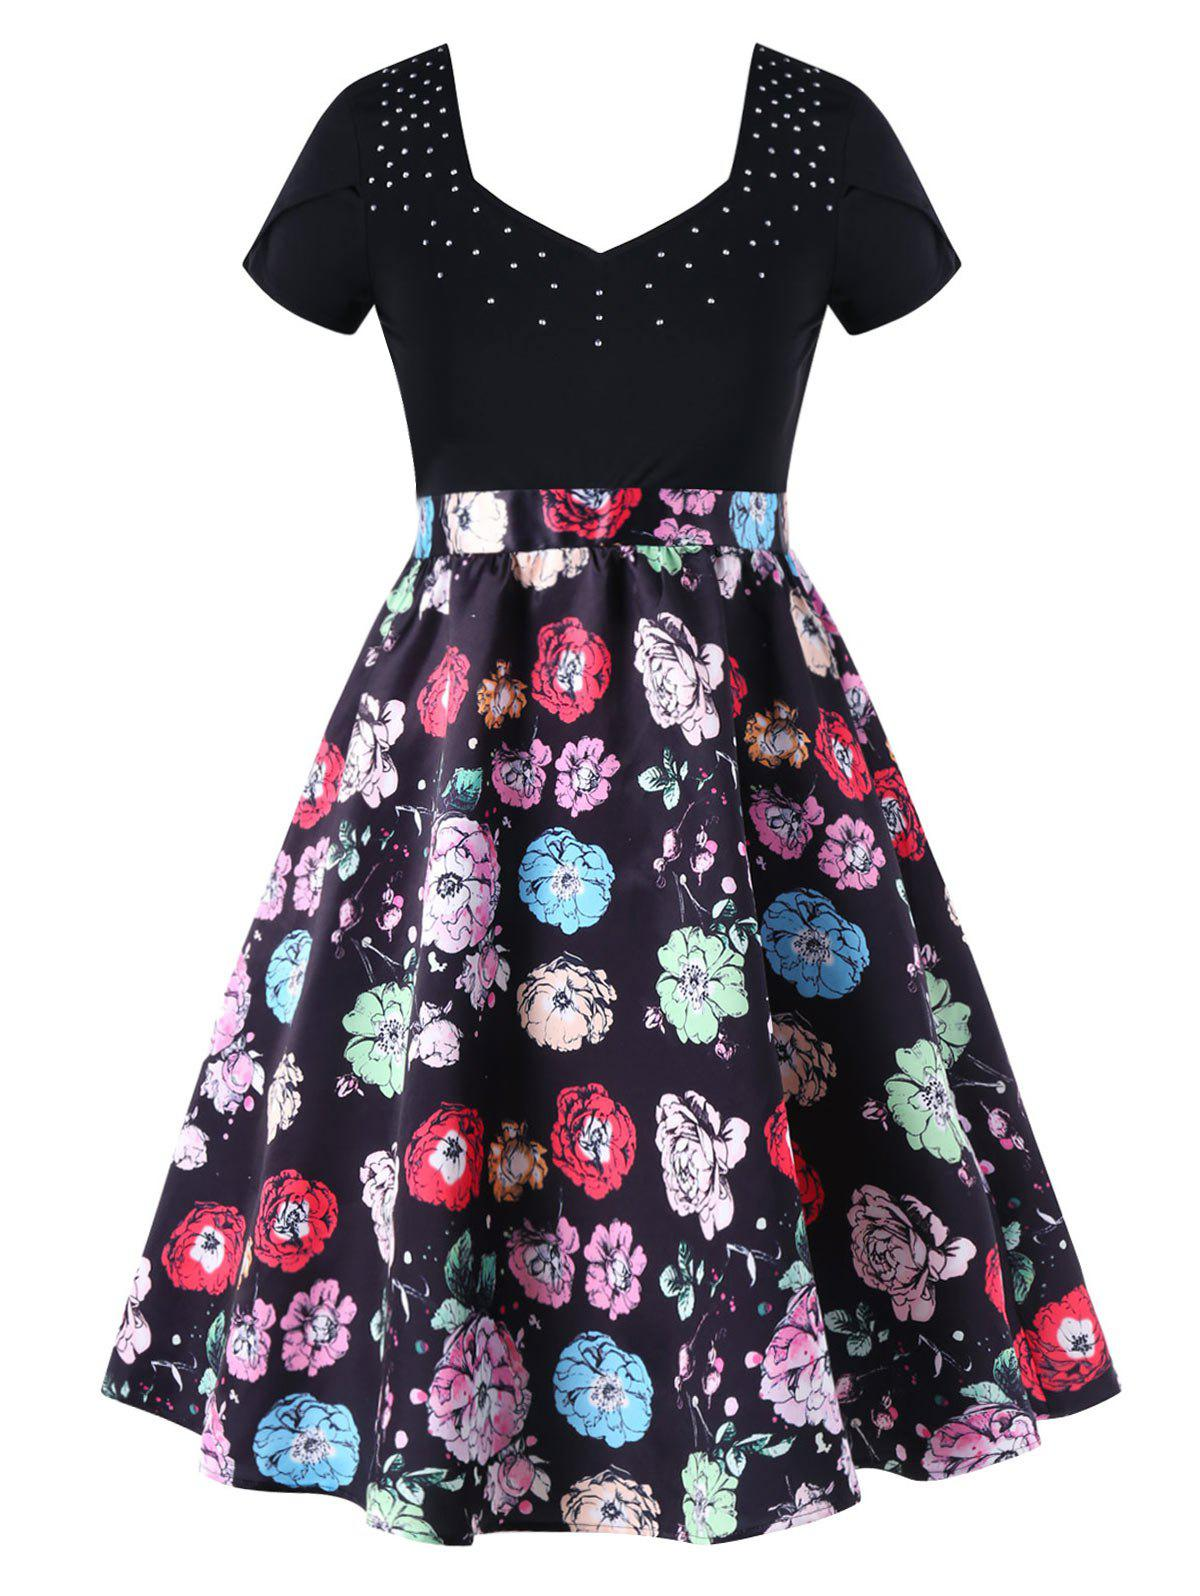 Chic Floral Print Plus Size Fit and Flare Dress